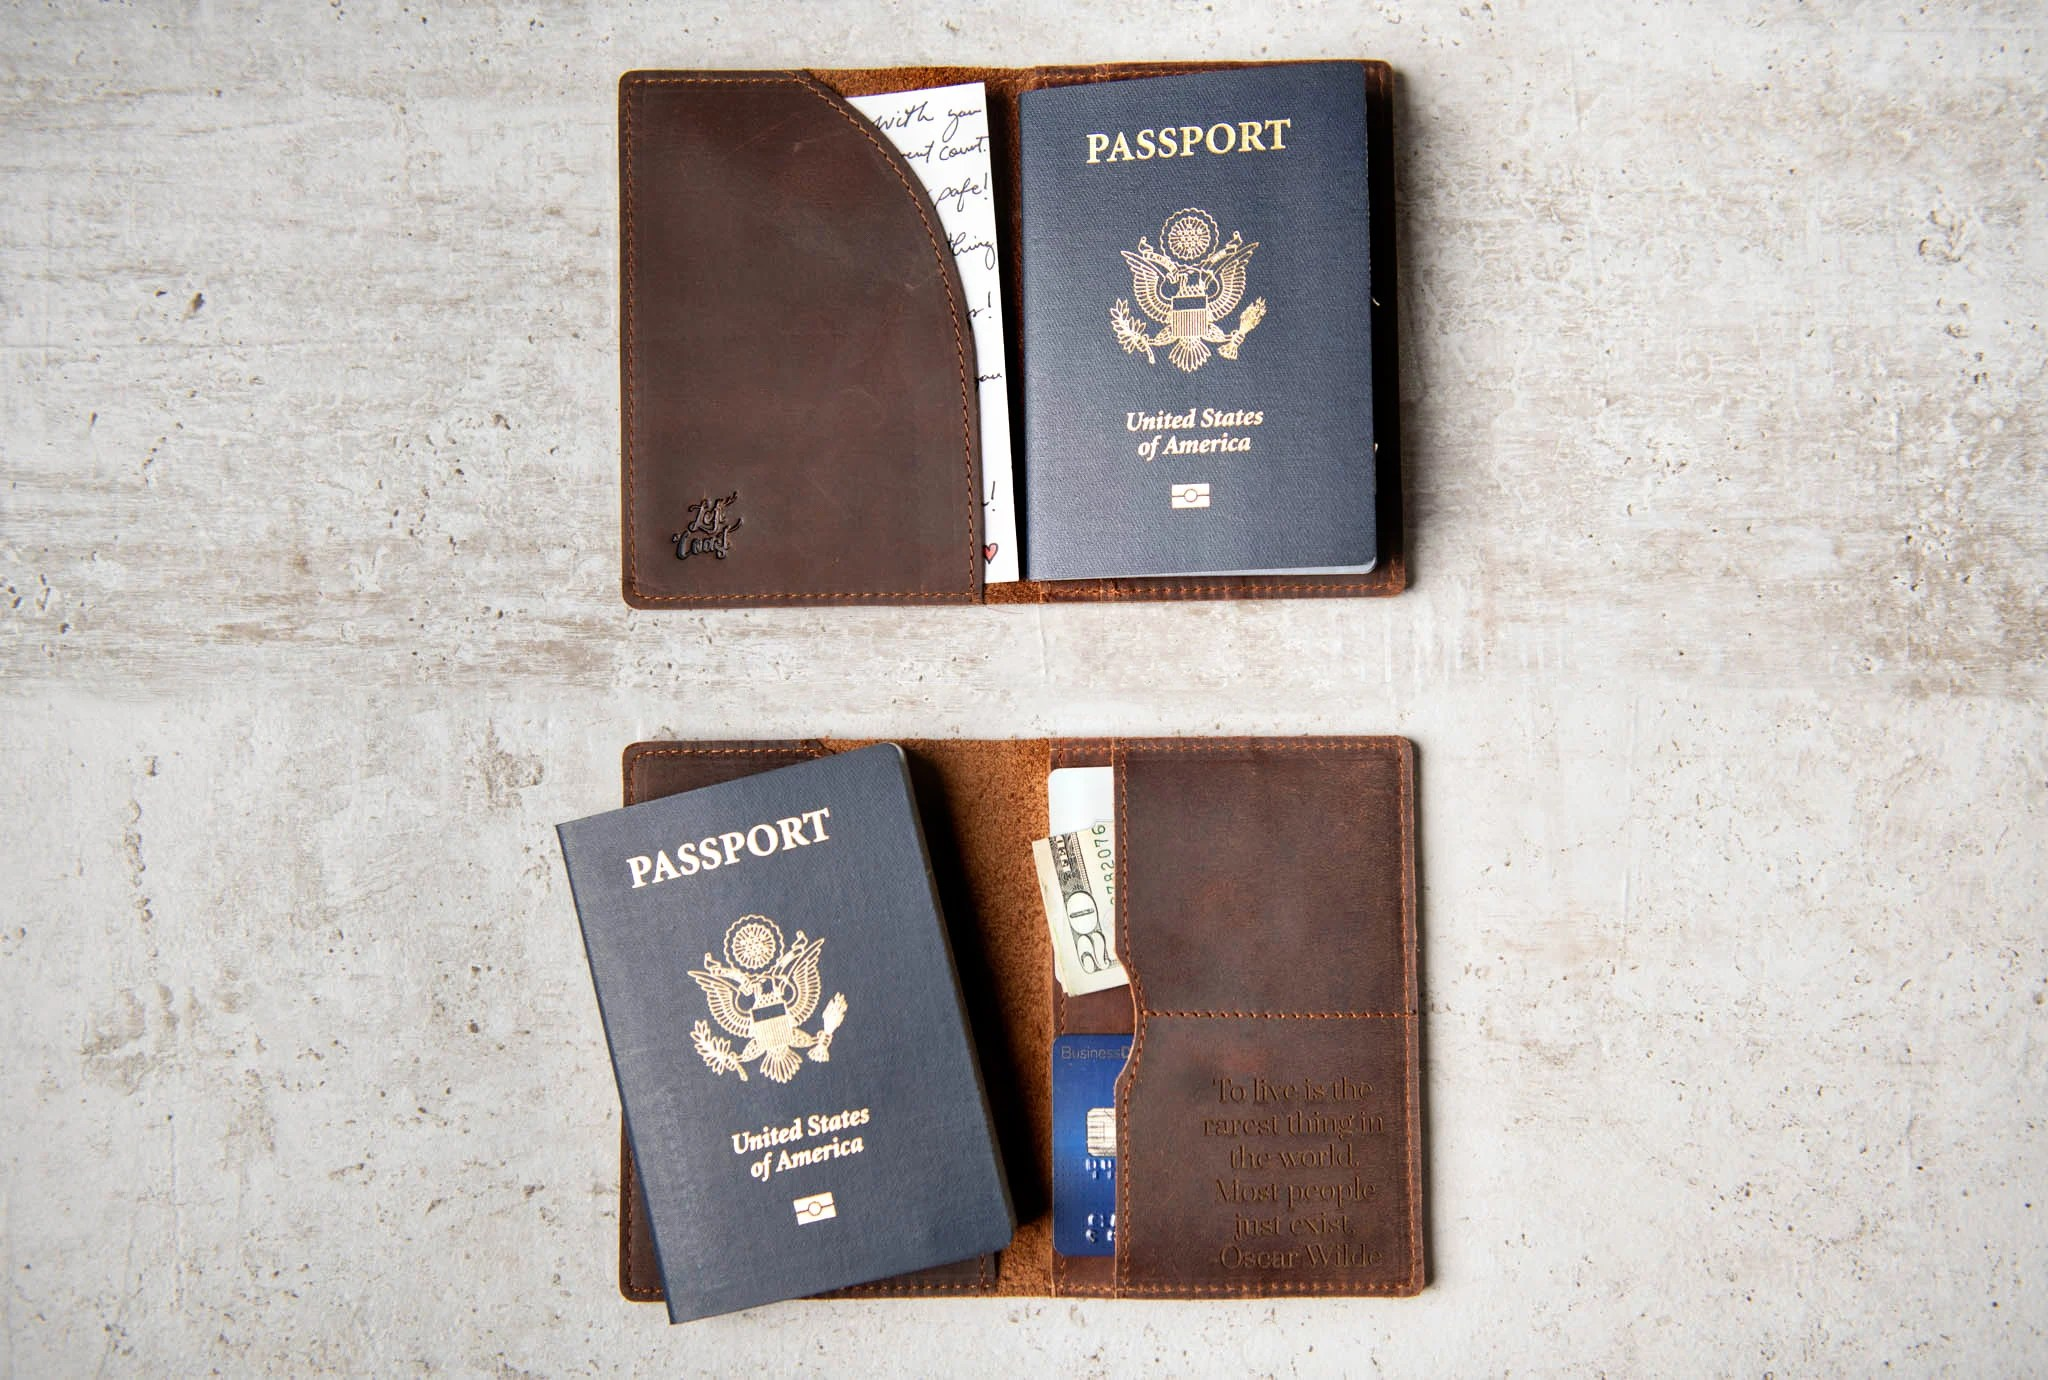 Personalized Leather Passport Cover Holder by Left Coast image 3